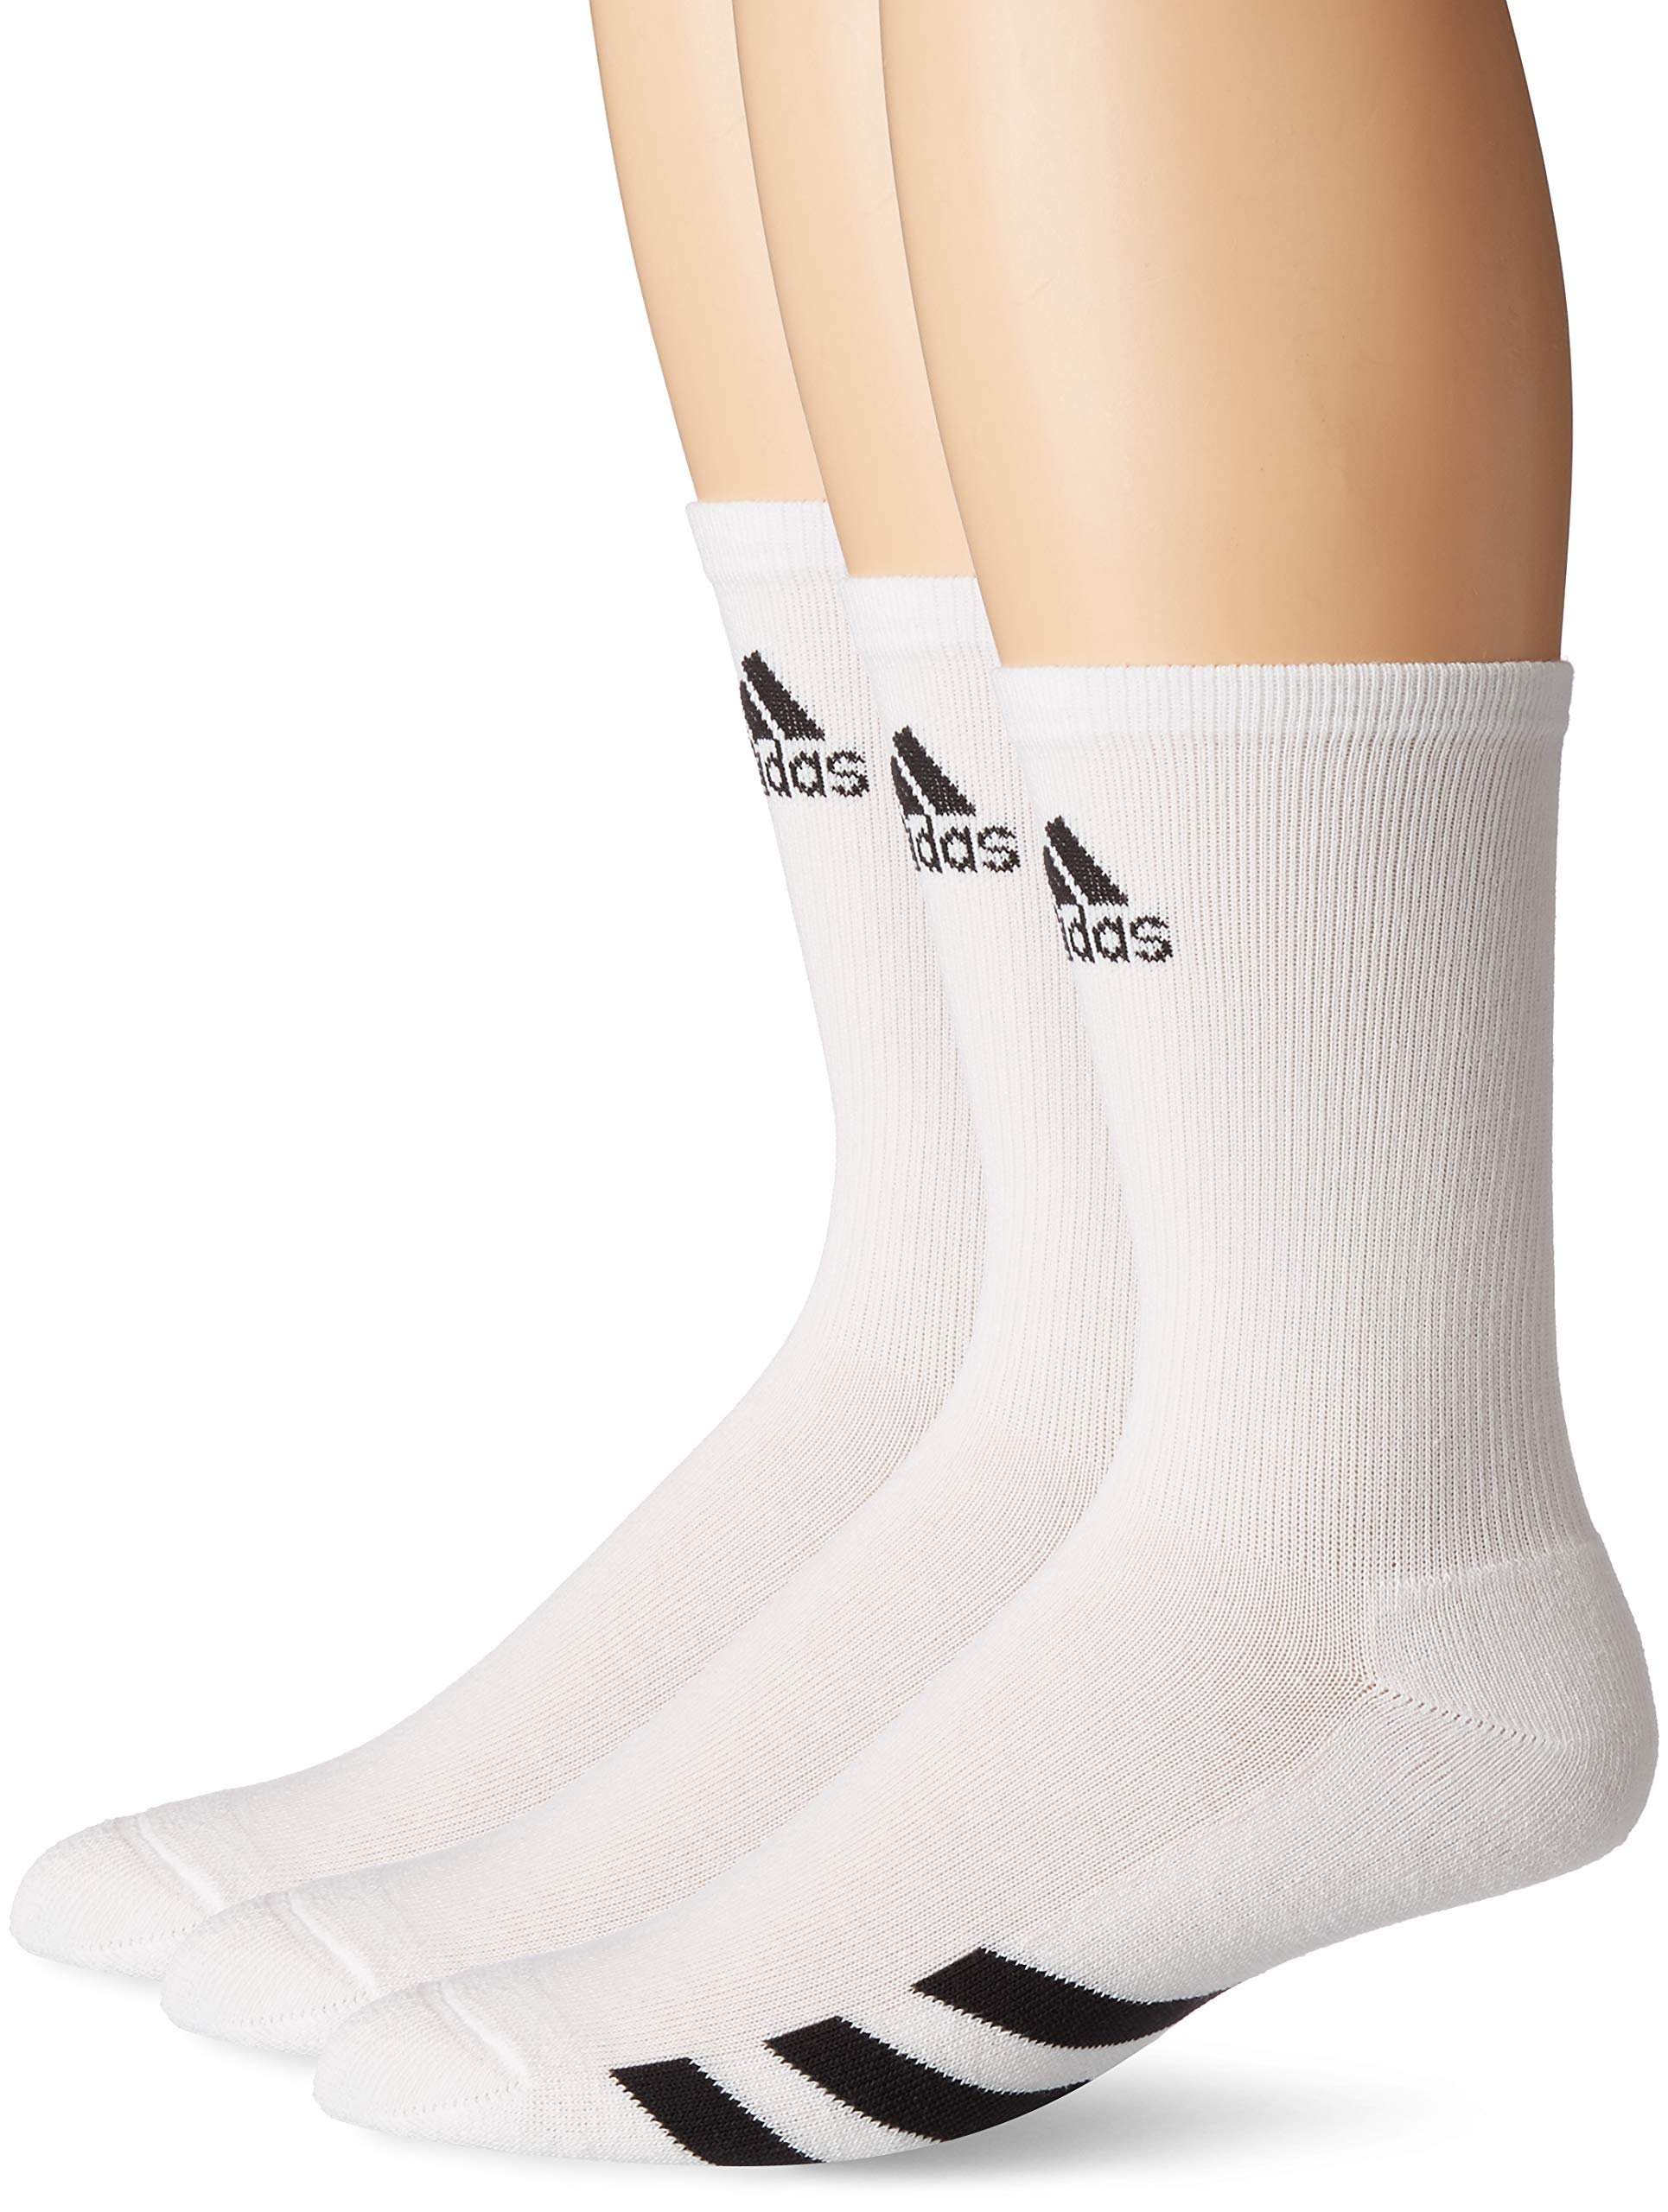 adidas Golf Men's 3-Pack Crew Sock, White, 11-14 by adidas